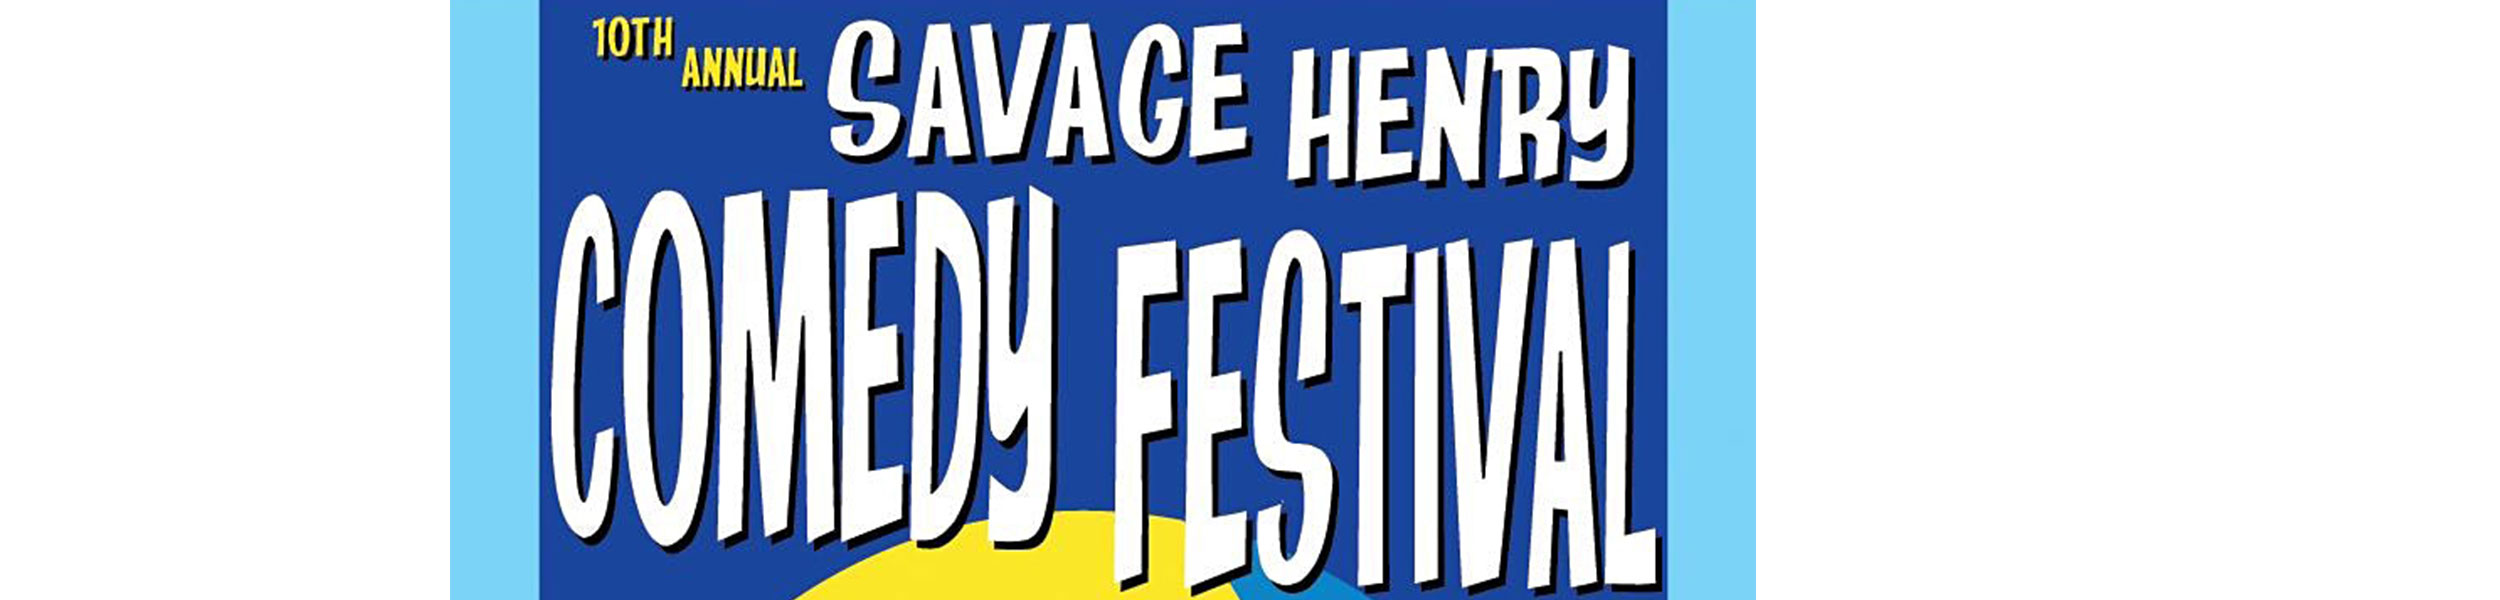 10th Annual Savage Henry Comedy Festival